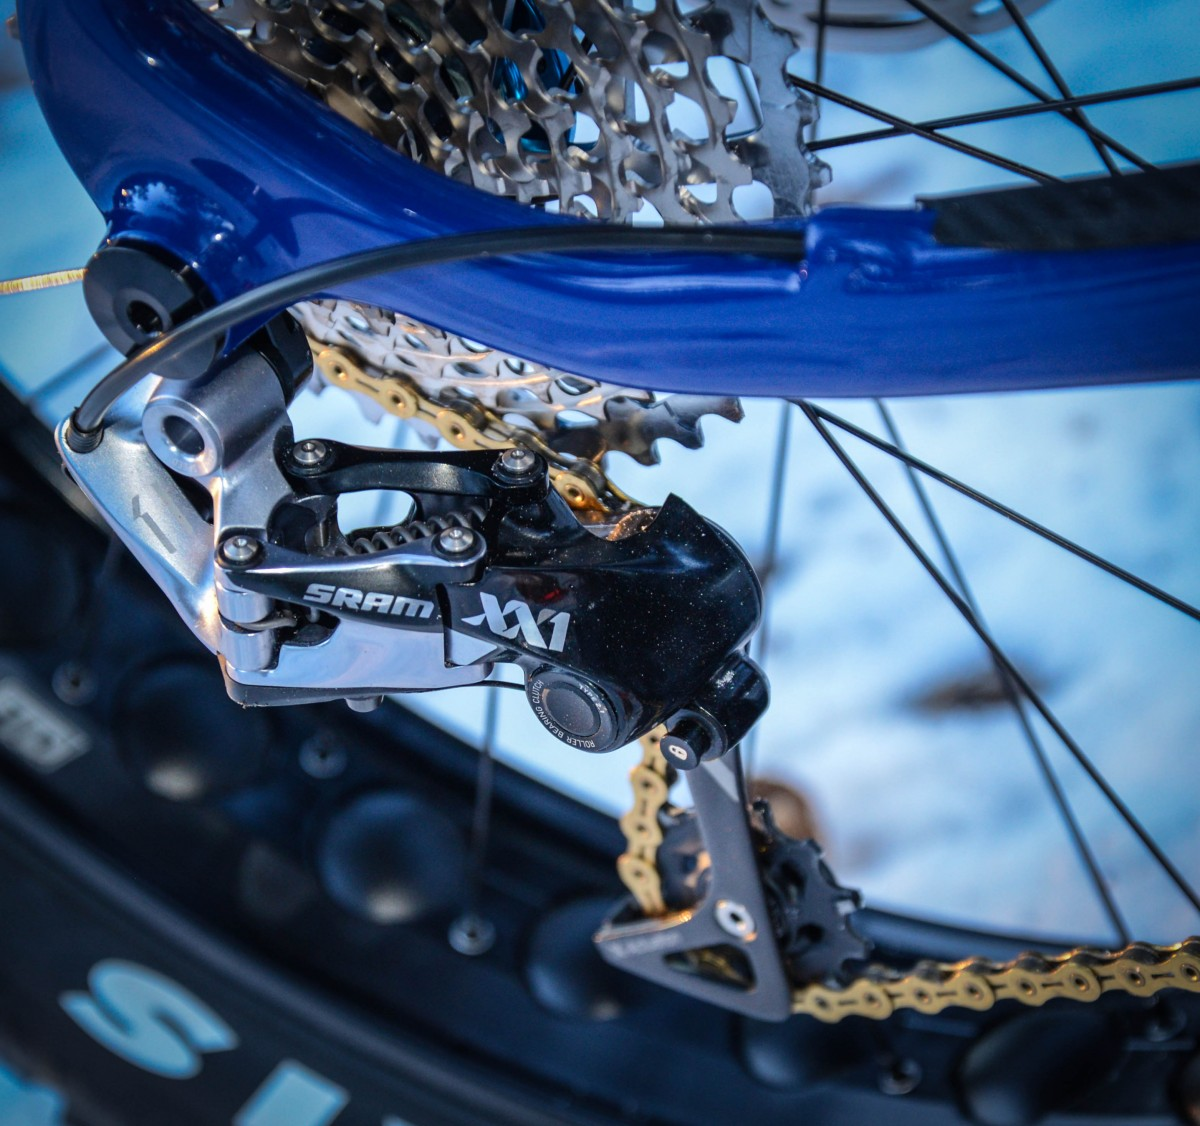 The SRAM XX1 rear derailleur mates perfectly with the KMC chain and makes a very good chainline to accommodate 5 inch tires